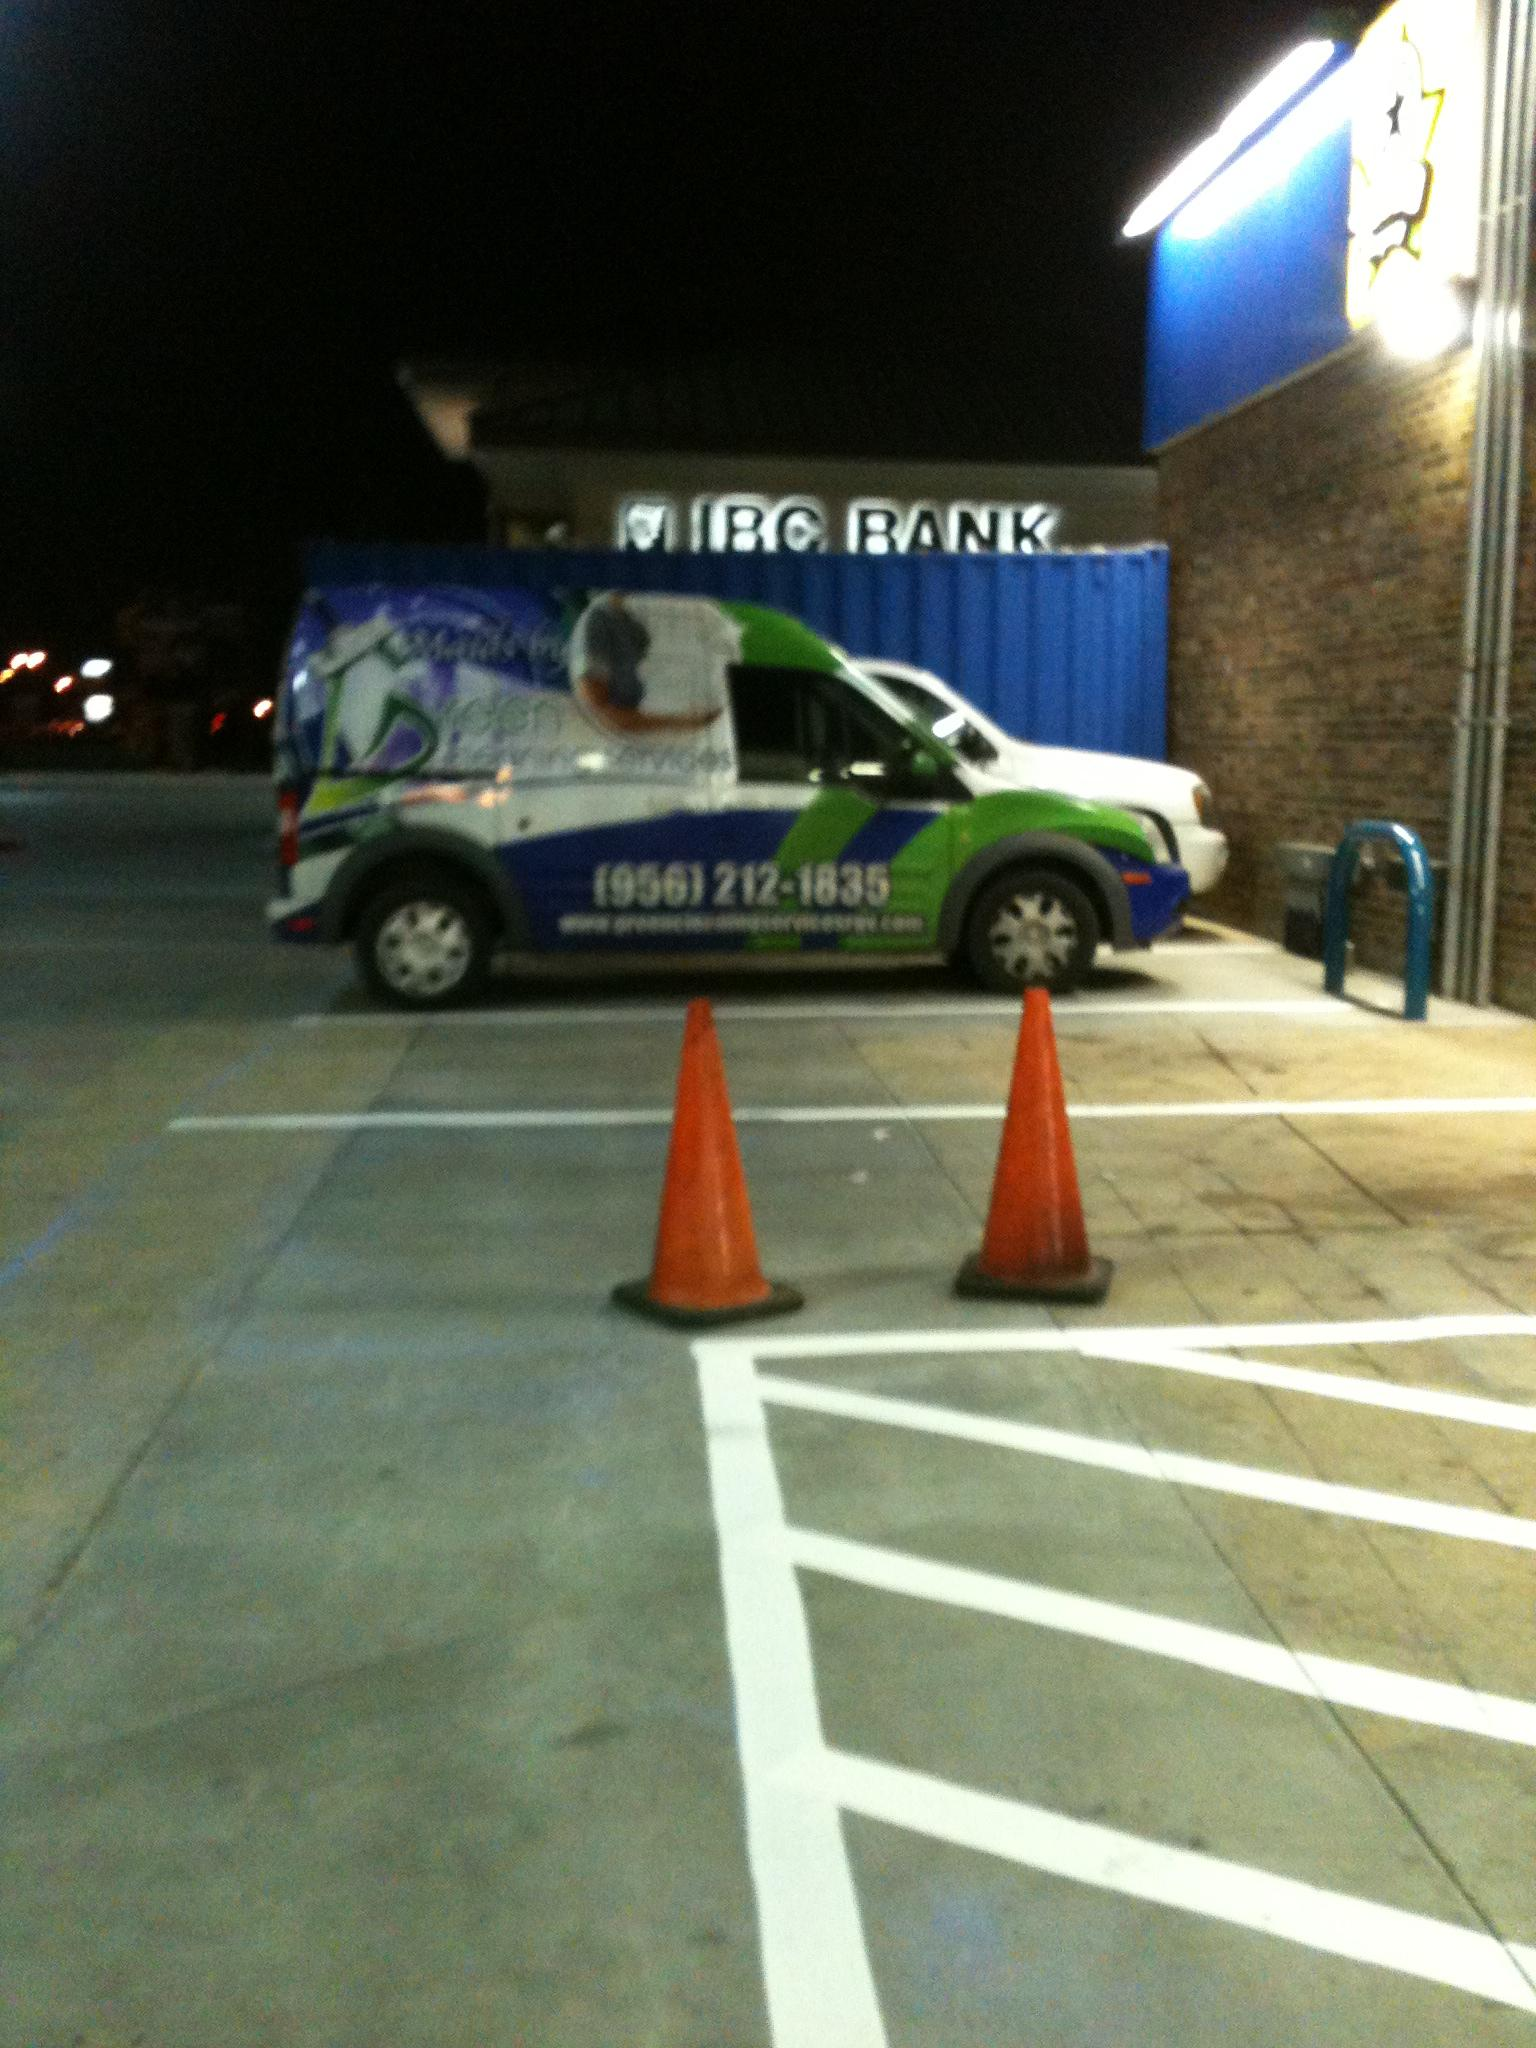 Green Cleaning Services LLC image 51